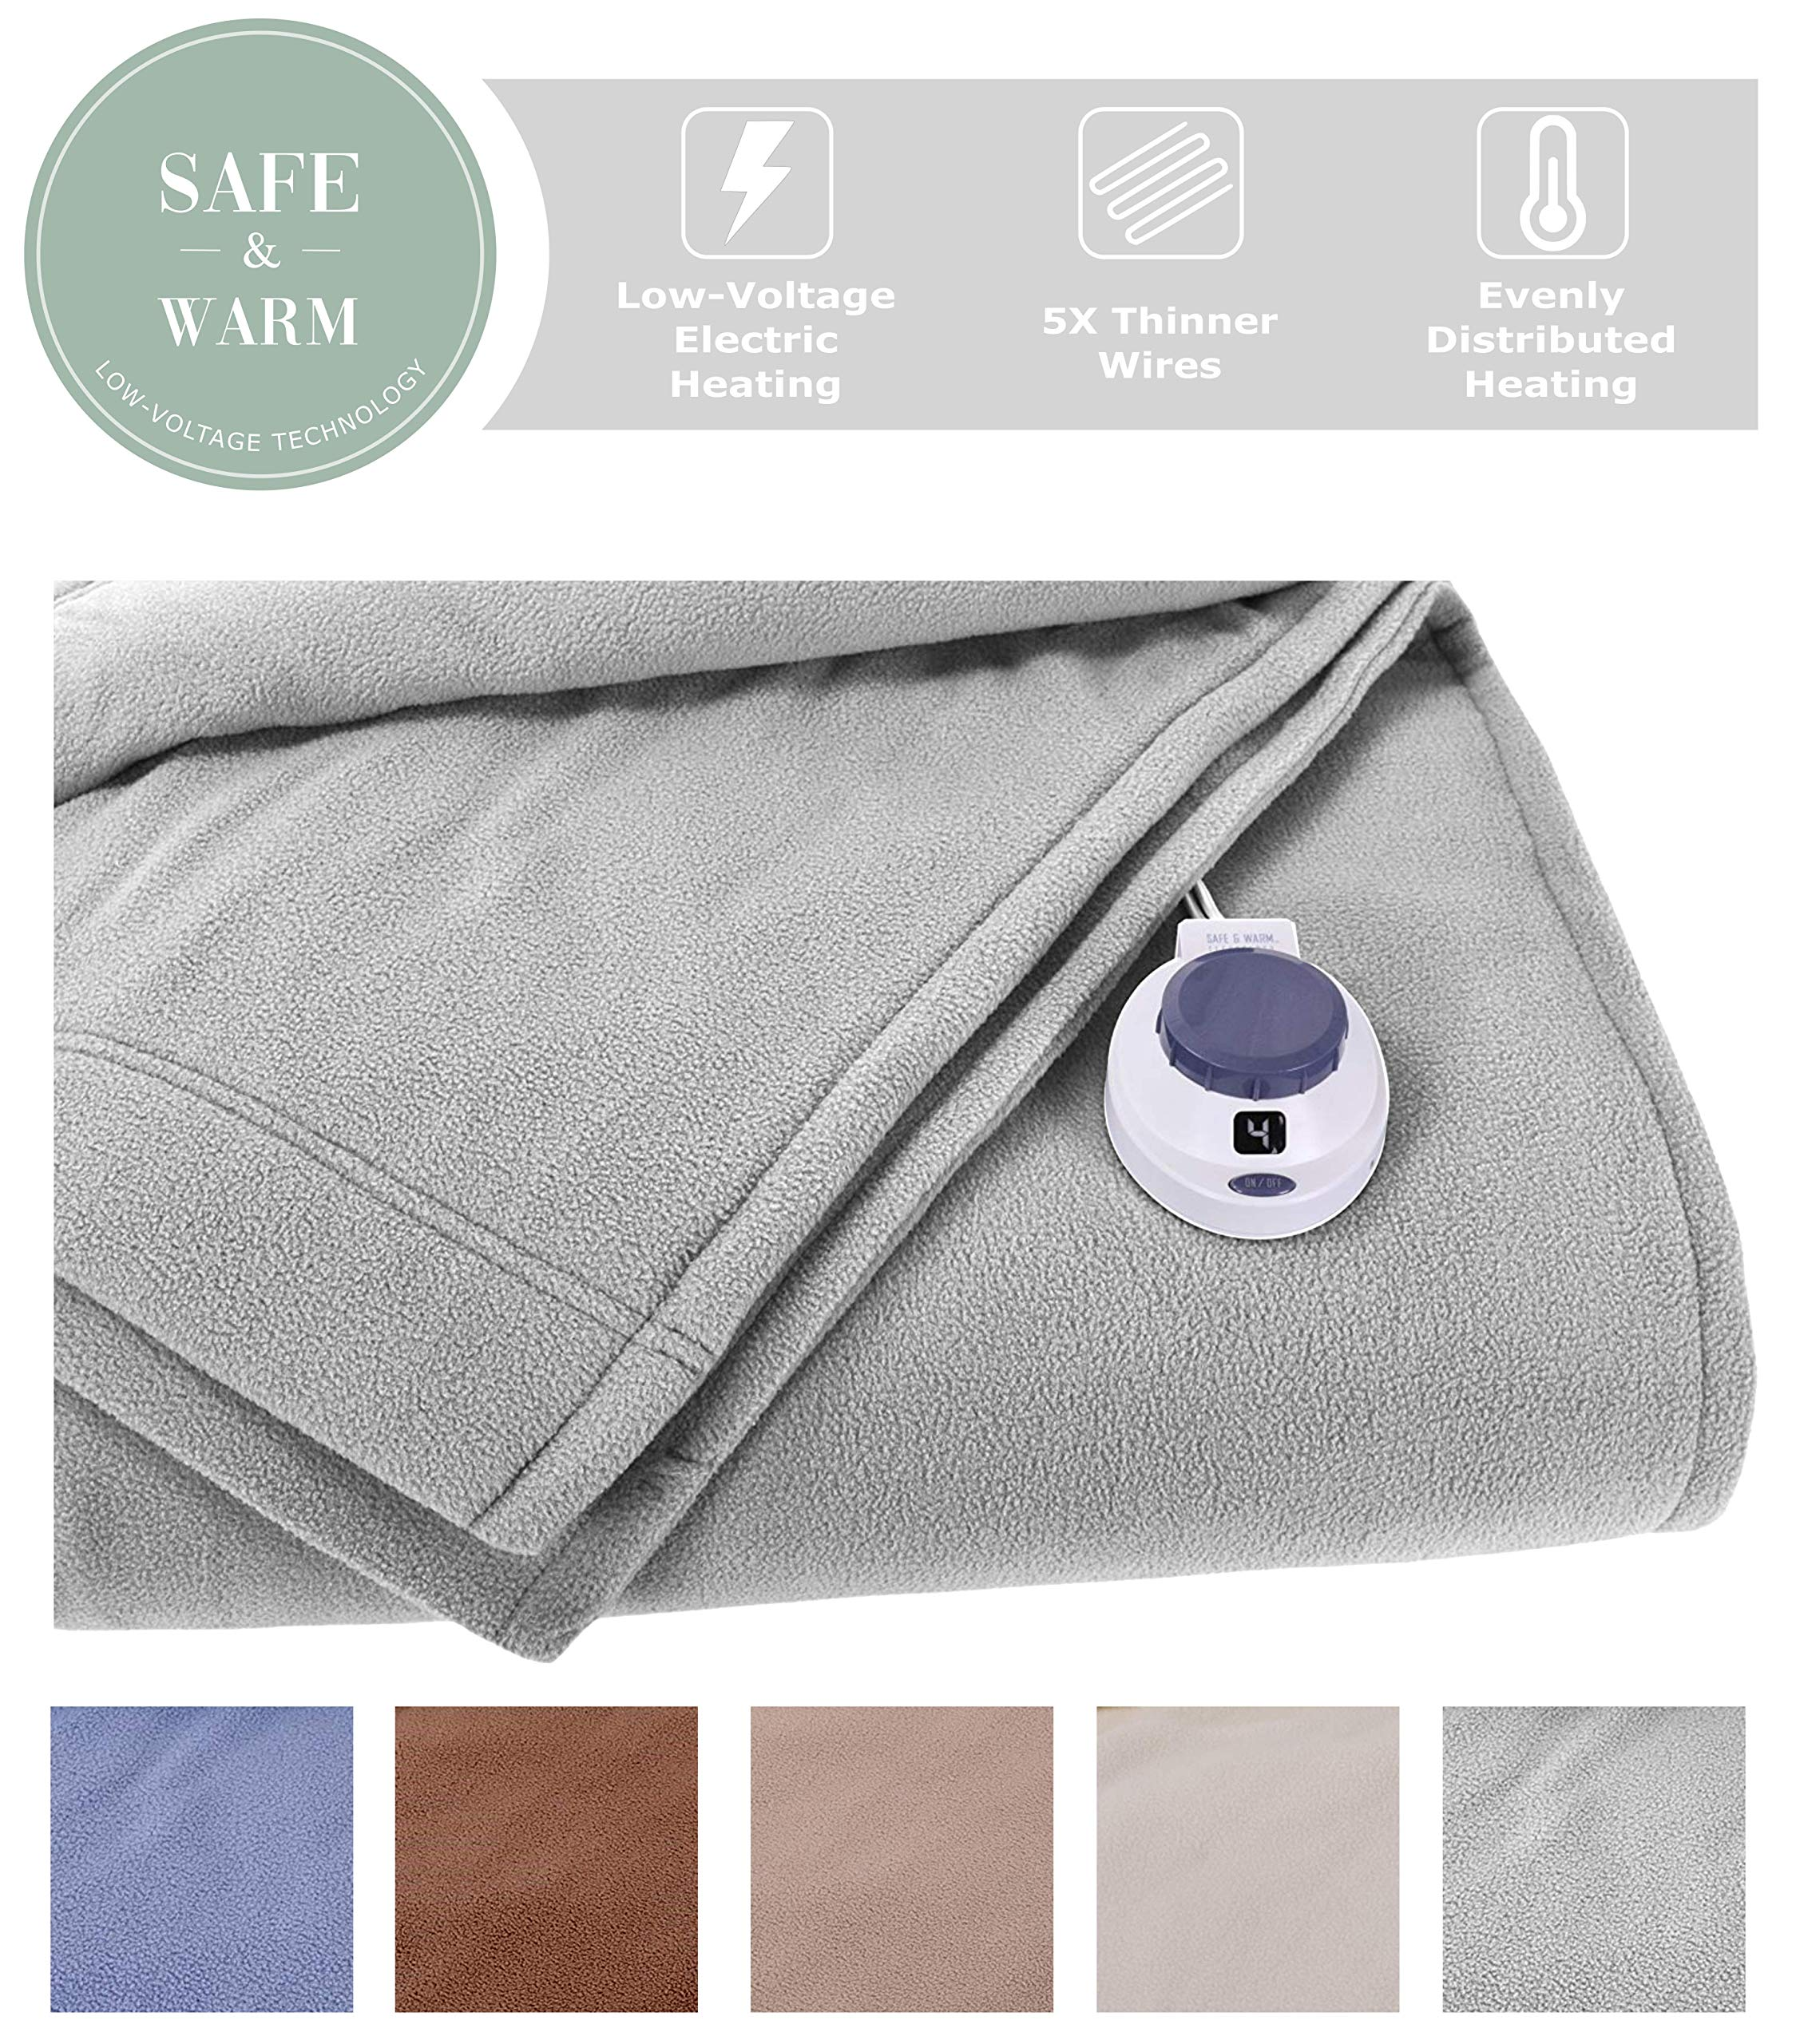 SoftHeat by Perfect Fit | Luxury Fleece Electric Heated Blanket with Safe & Warm Low-Voltage Technology (Full, Gray)